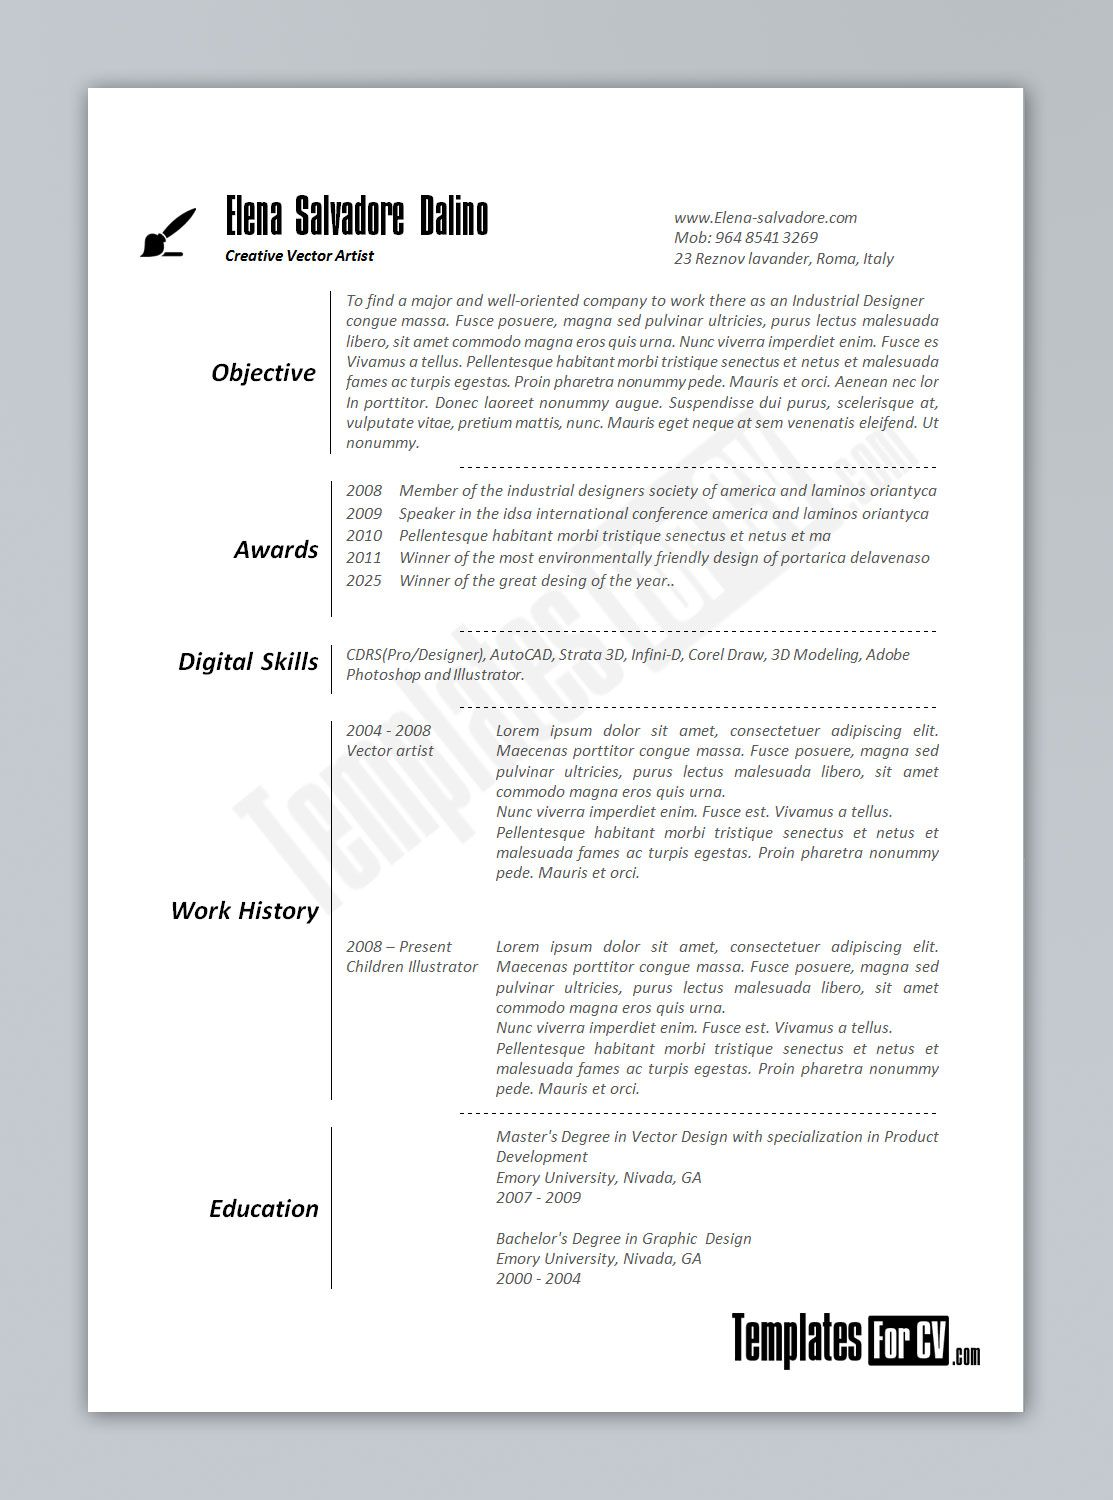 How to Create a Resume On Microsoft Word   resume templates for microsoft word      Resume and Resume Templates